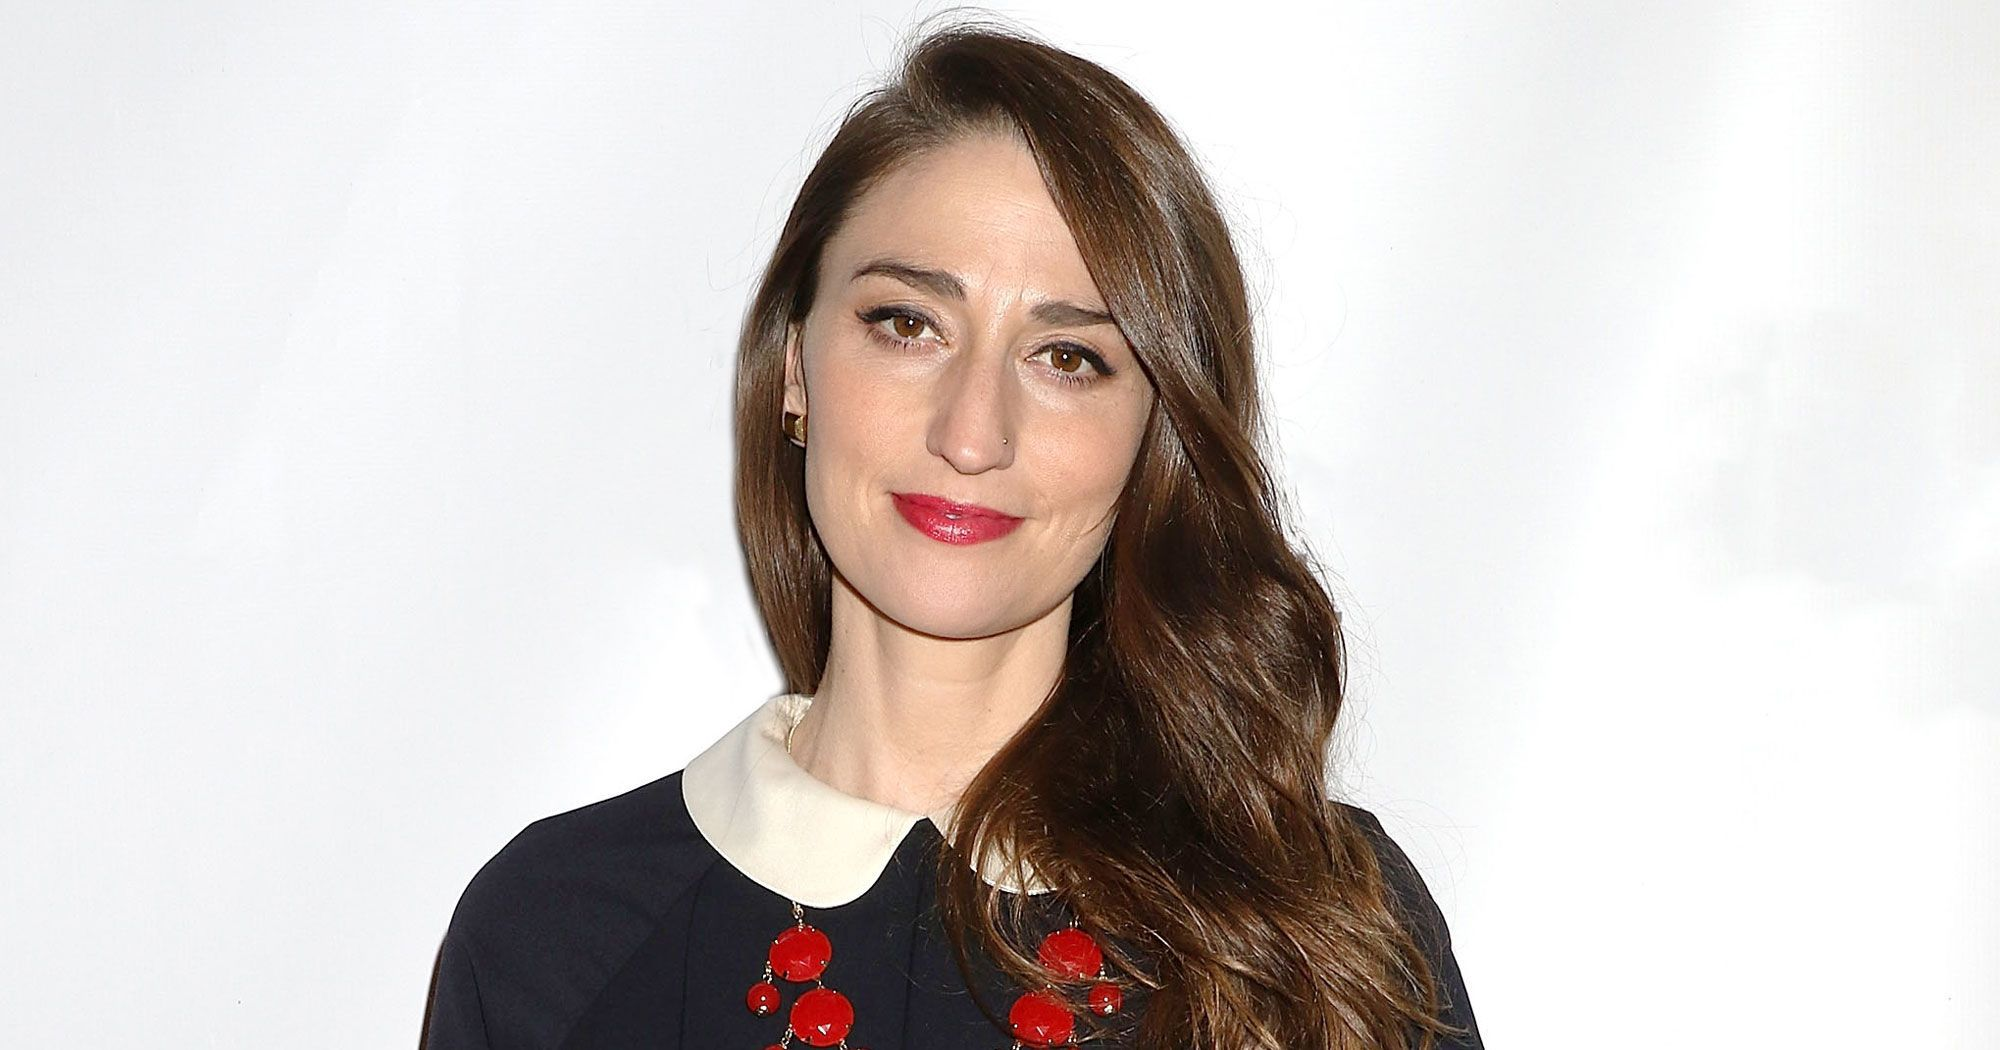 Sara Bareilles Hd Background